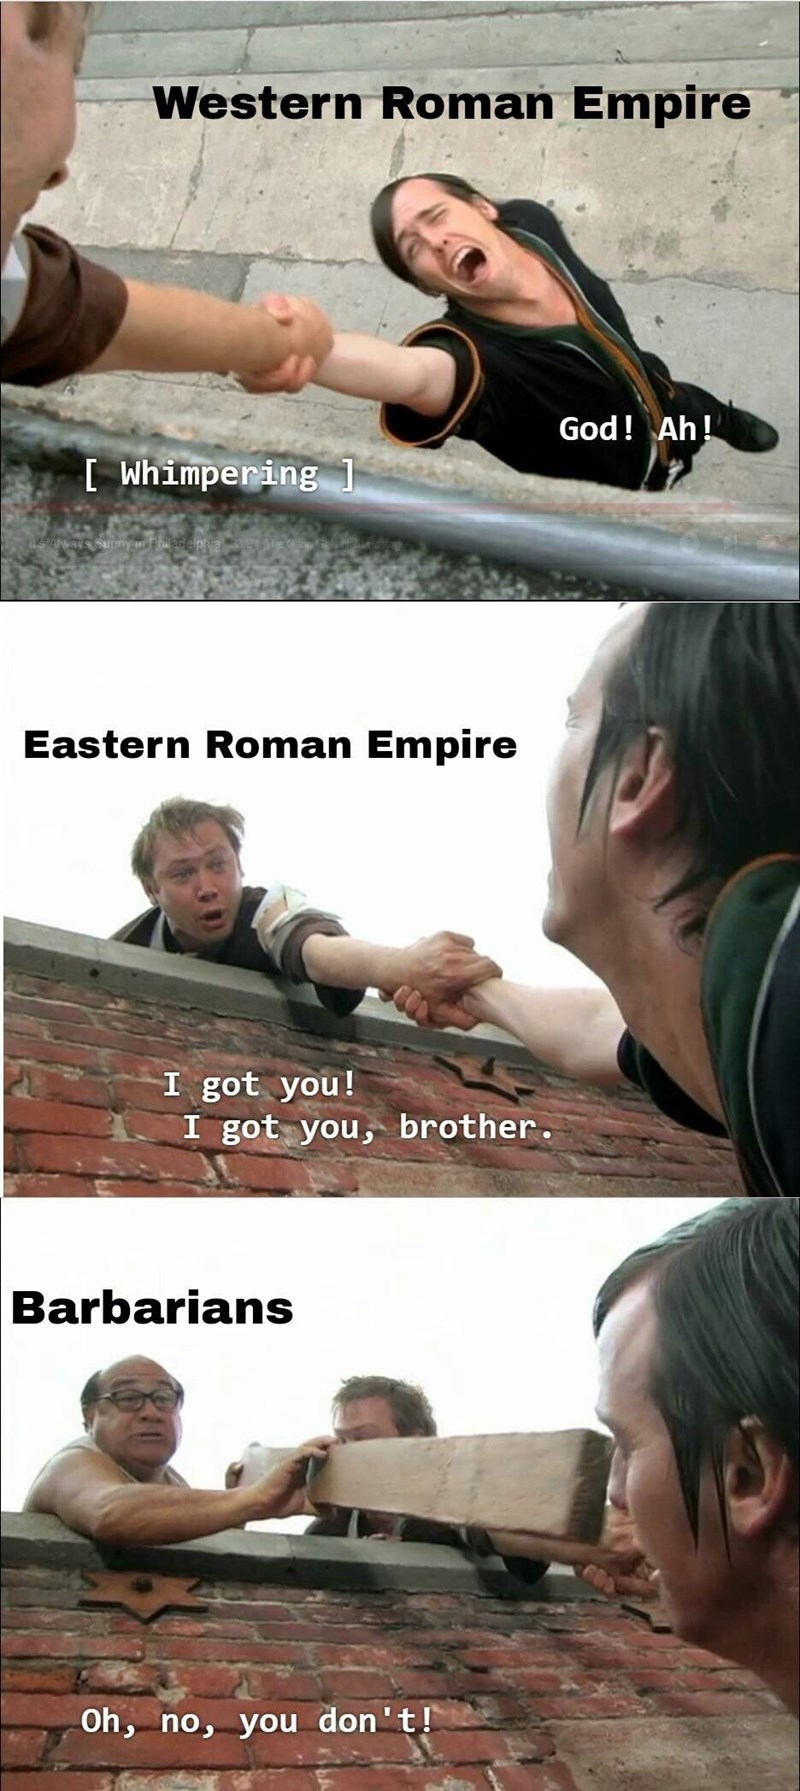 Arm - Western Roman Empire God! Ah! [ Whimpering 1 S Awars Sunny n Fhilade phia TH Eastern Roman Empire I got you! I got you, brother. Barbarians Oh, no, you don't!